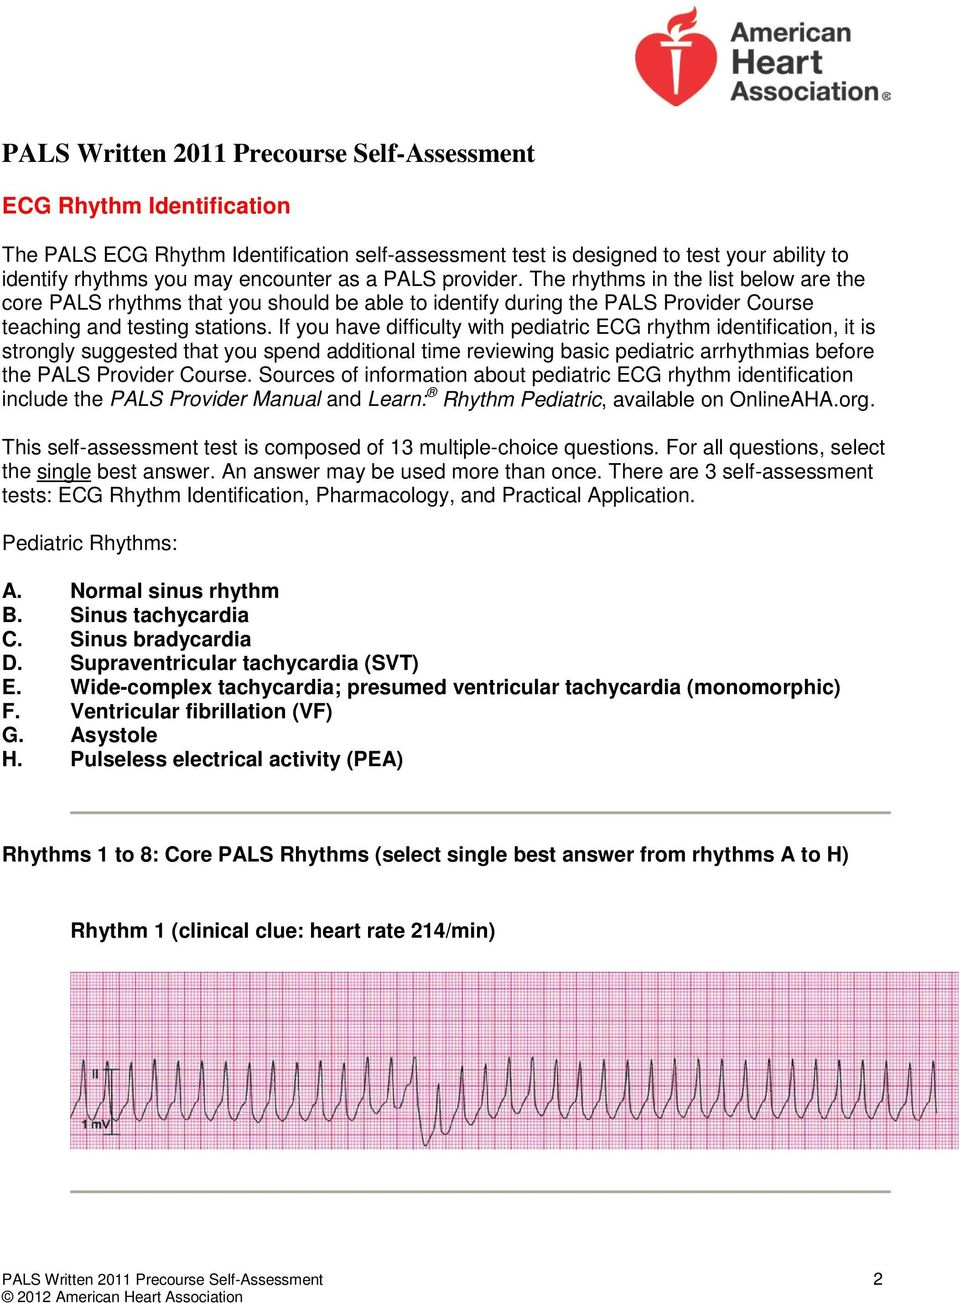 If you have difficulty with pediatric ECG rhythm identification, it is strongly suggested that you spend additional time reviewing basic pediatric arrhythmias before the PALS Provider Course.